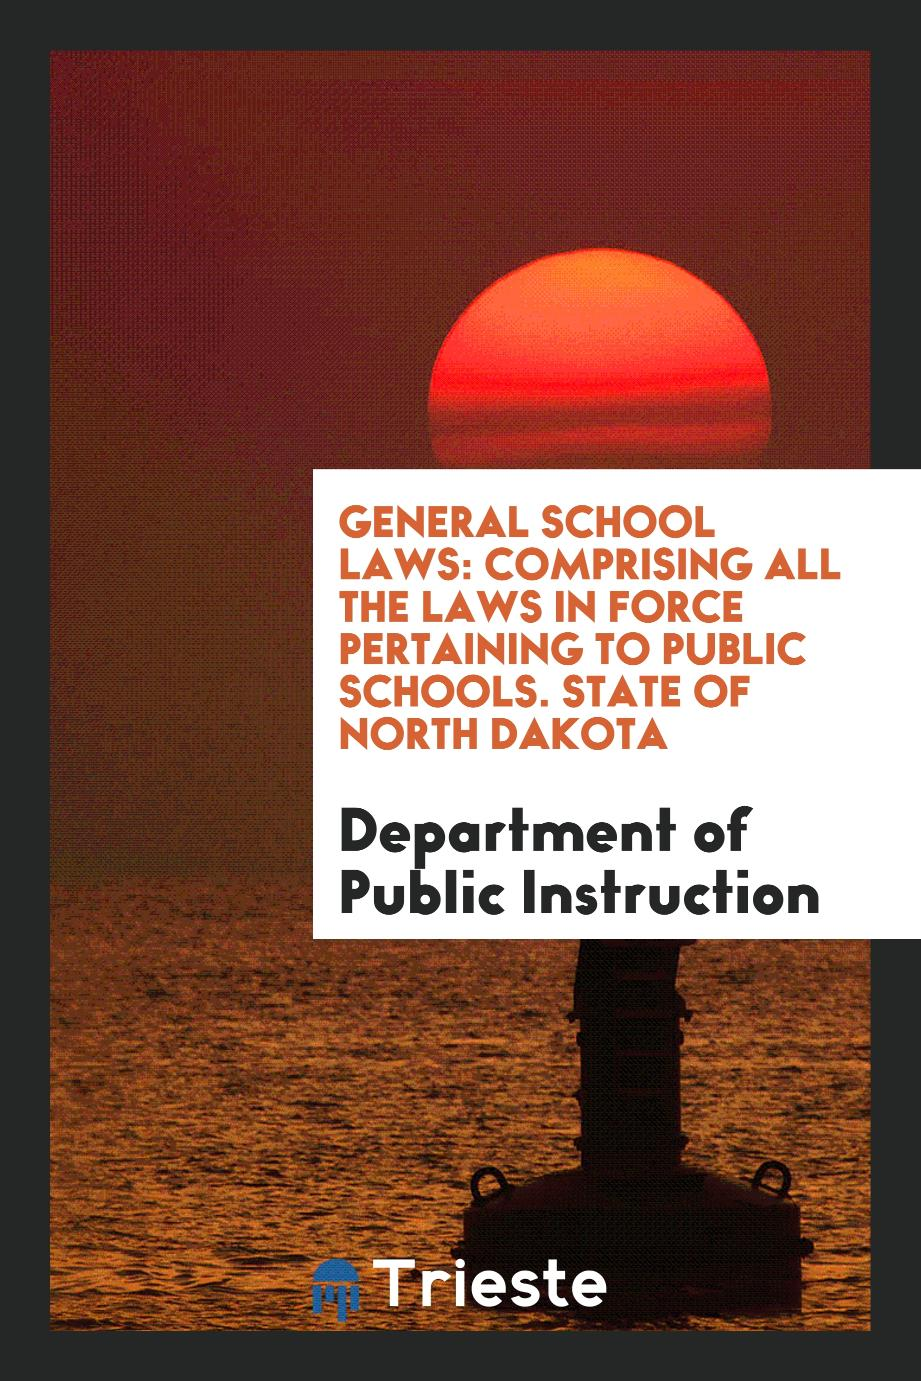 General School Laws: Comprising All the Laws in Force Pertaining to Public Schools. State of North Dakota